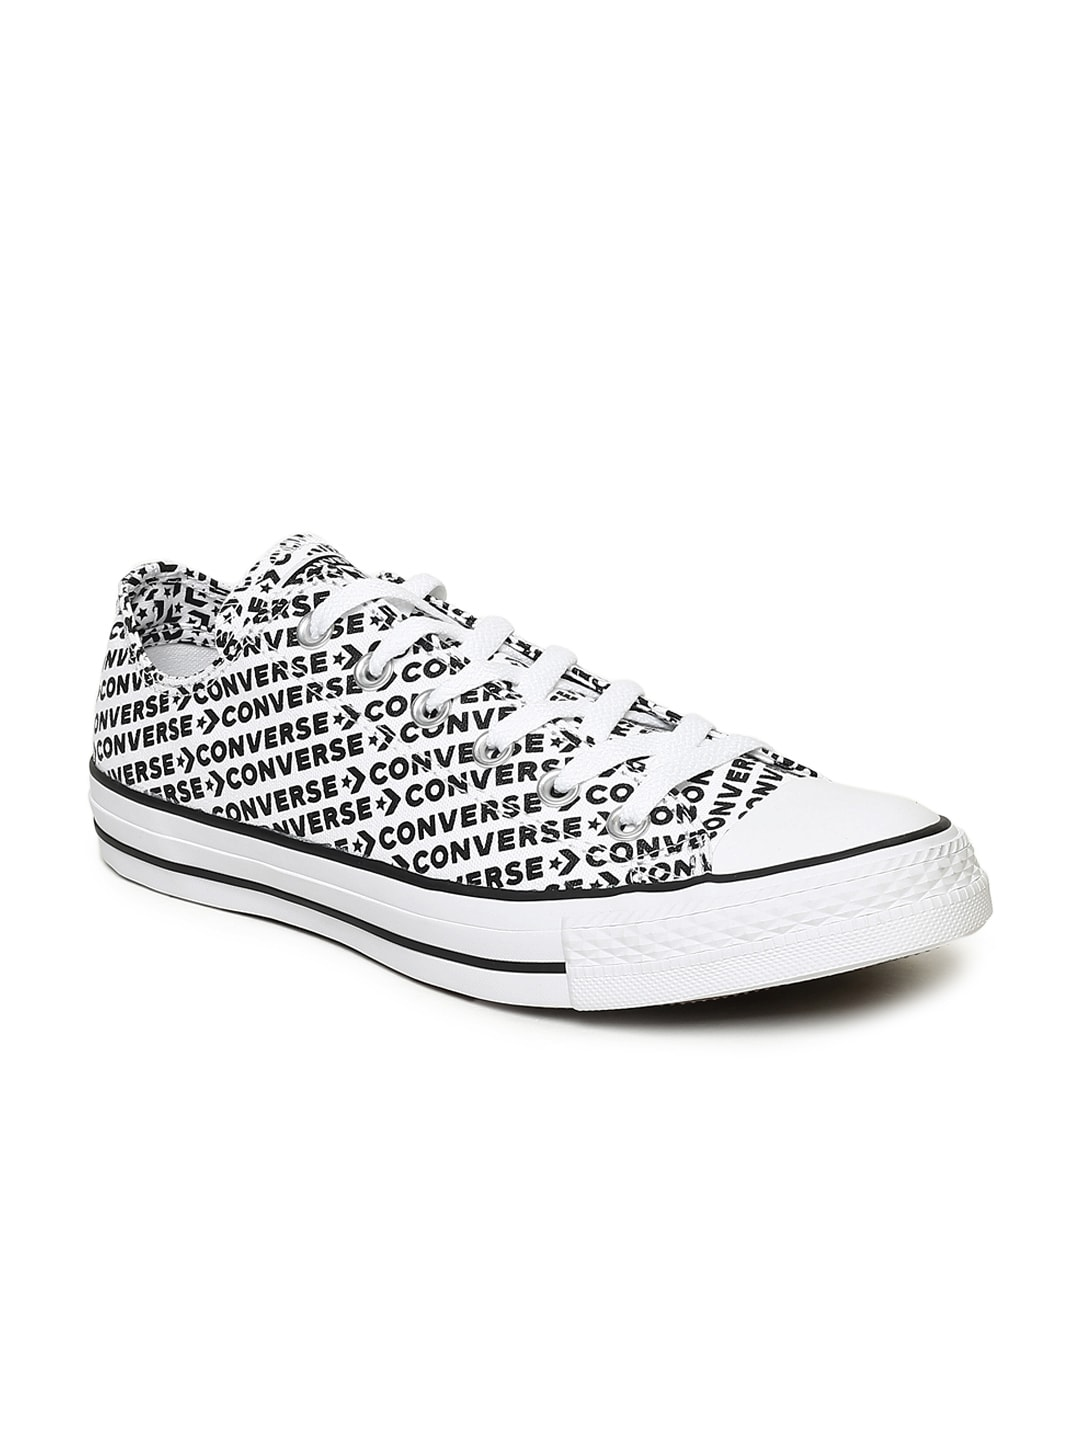 140ad888a88f Converse Shoes - Buy Converse Canvas Shoes   Sneakers Online